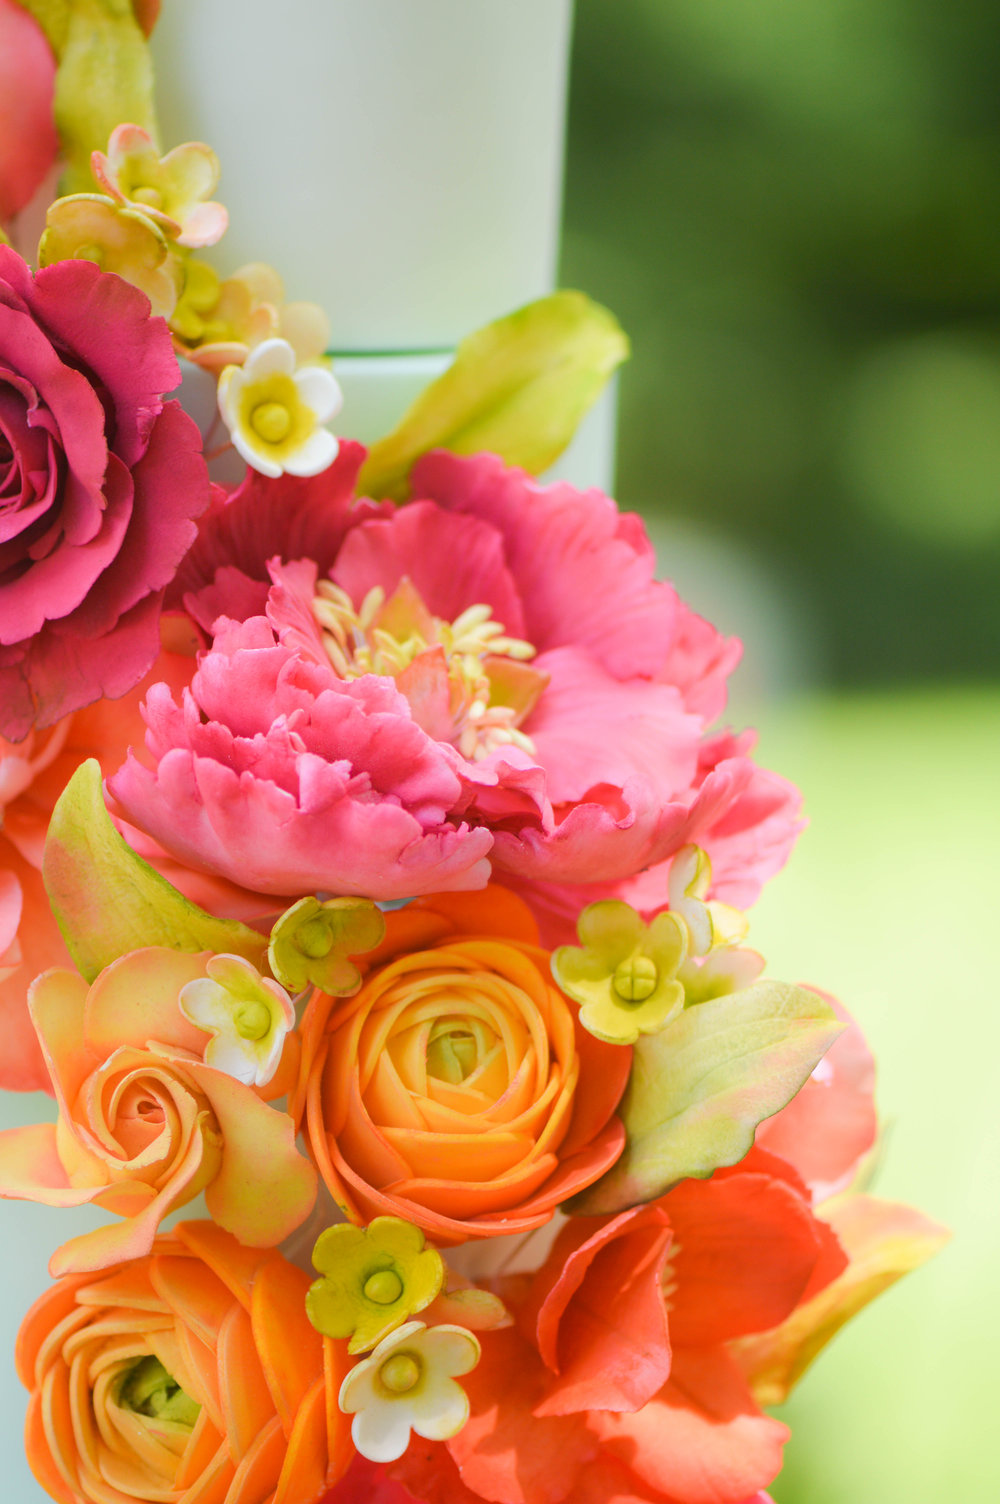 The bouquet incorporated the brides favorite flowers. - Ana loved Peonies, Roses and Ranunculus, which were all incorporated into the arrangement.